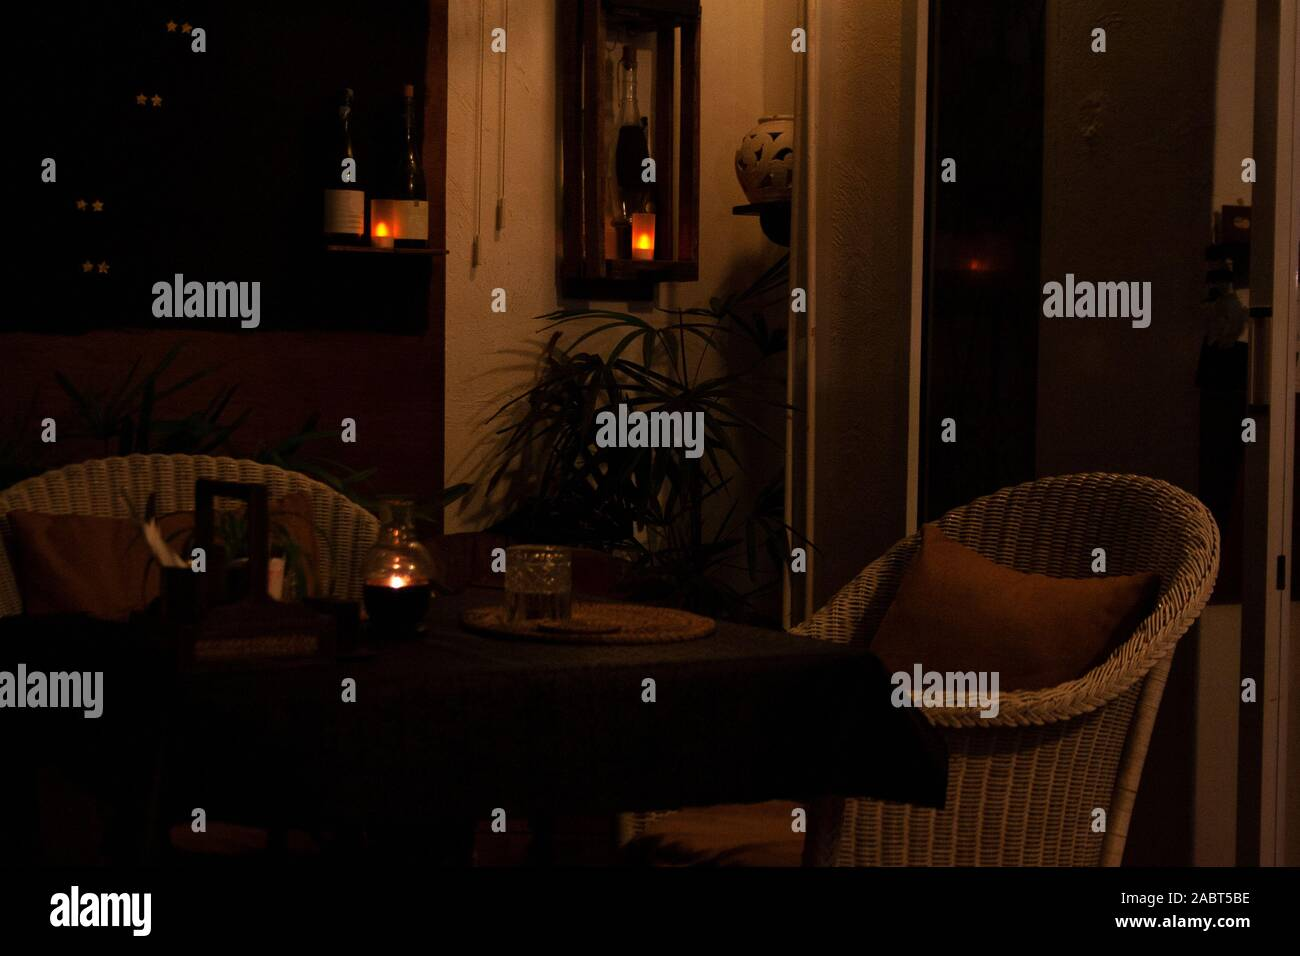 Cozy French Cafe Interior Detail With Candles Glow In The Evening Near Seaside Of Koh Samui Island Thailand Stock Photo Alamy